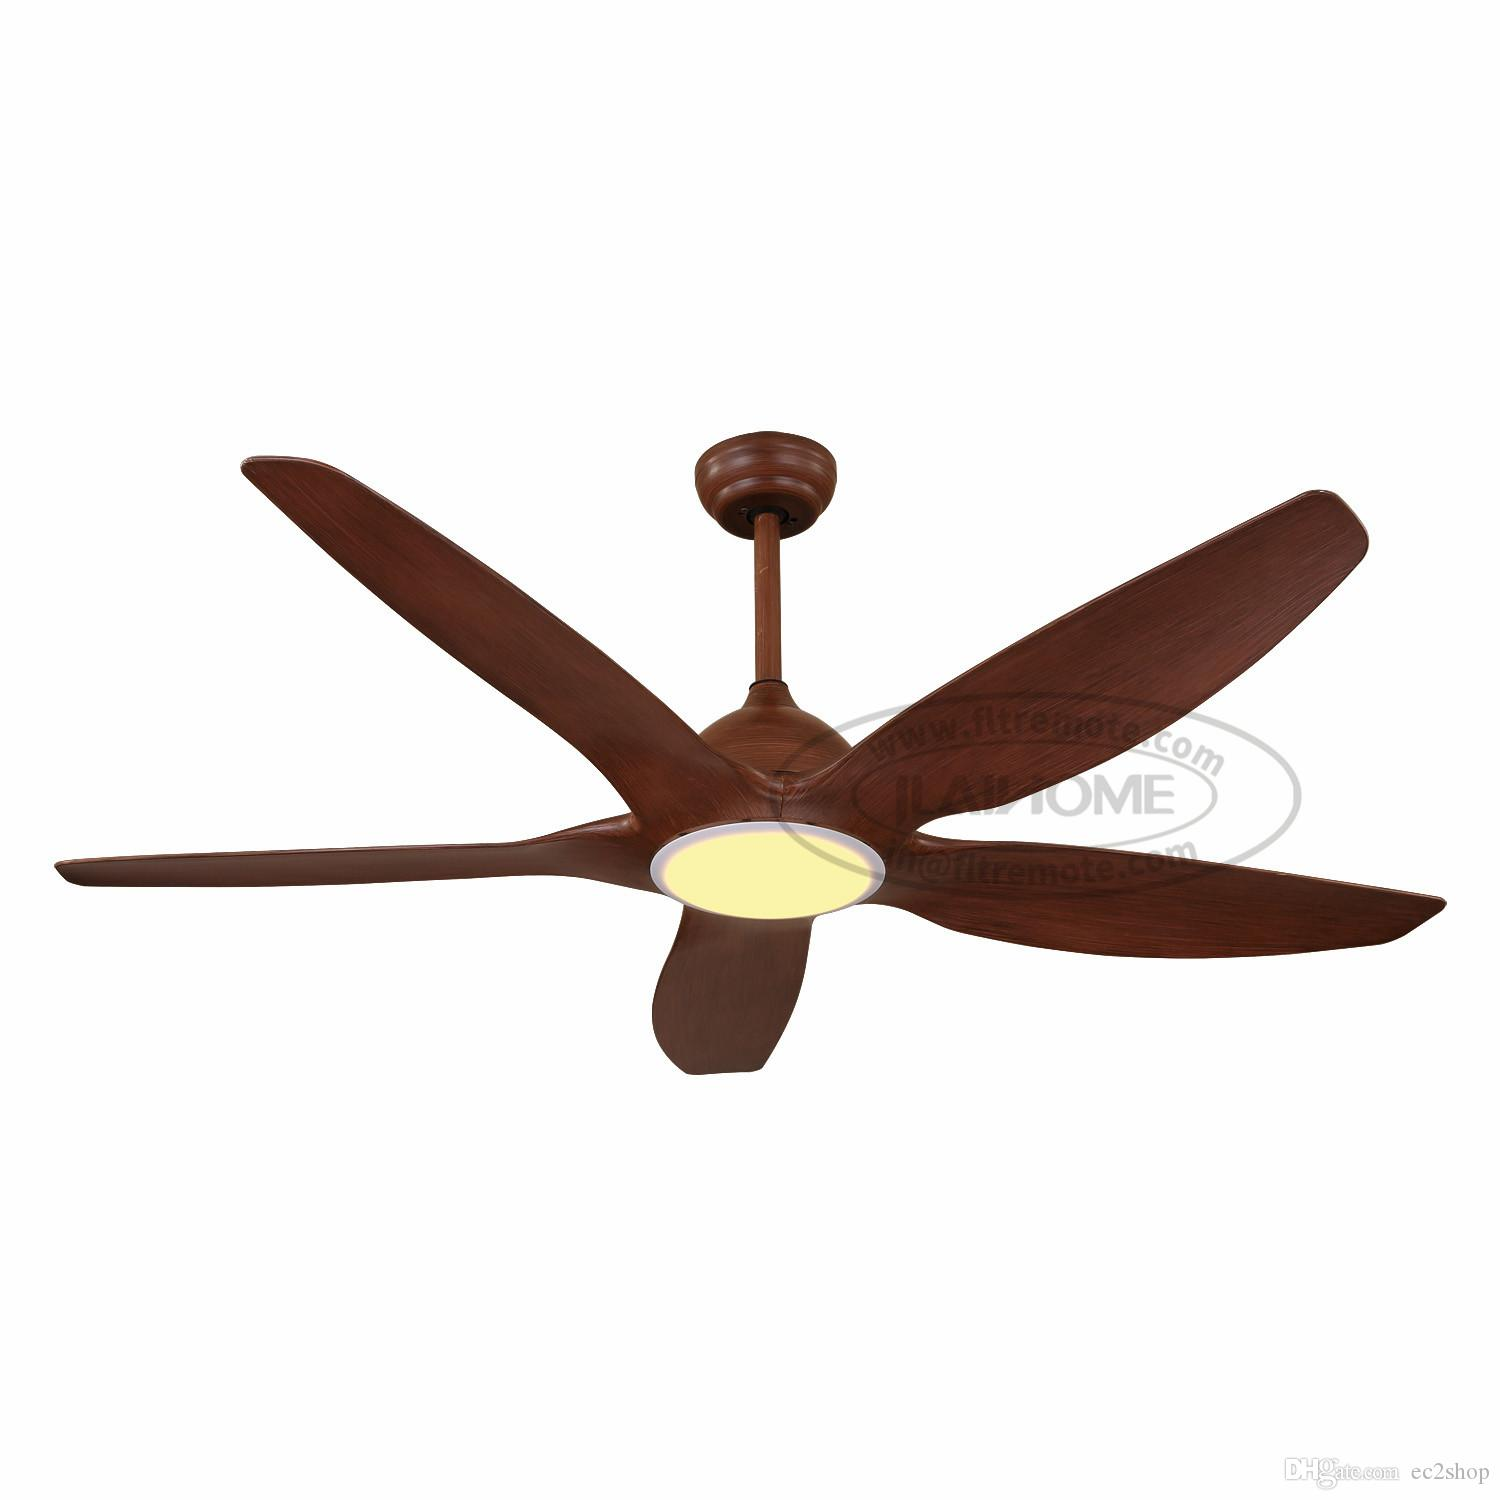 60 inch ceiling fan with light bright light fancy ceiling fans 5 60 inch ceiling fan with light bright light fancy ceiling fans 5 wood paintd plastic blades ceiling fan sale lighted ceiling fans light fan online with aloadofball Choice Image